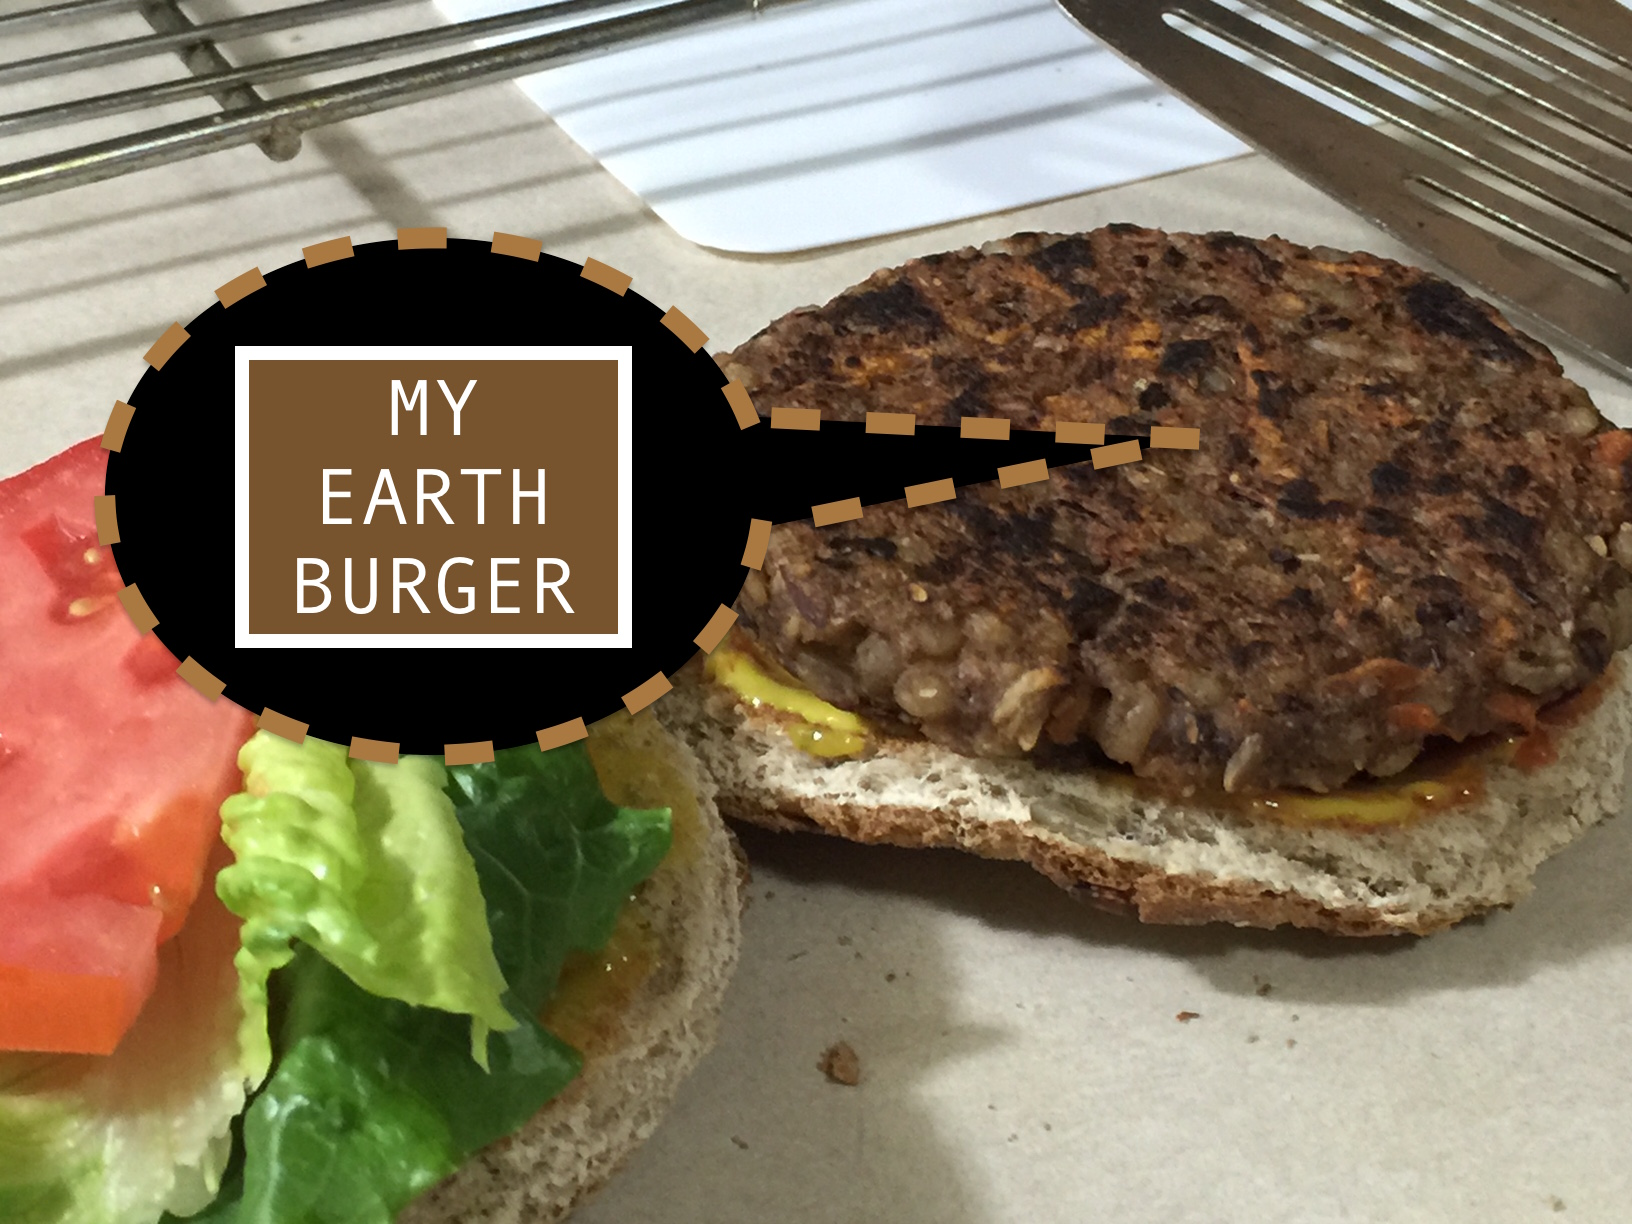 MY EARTH BURGER